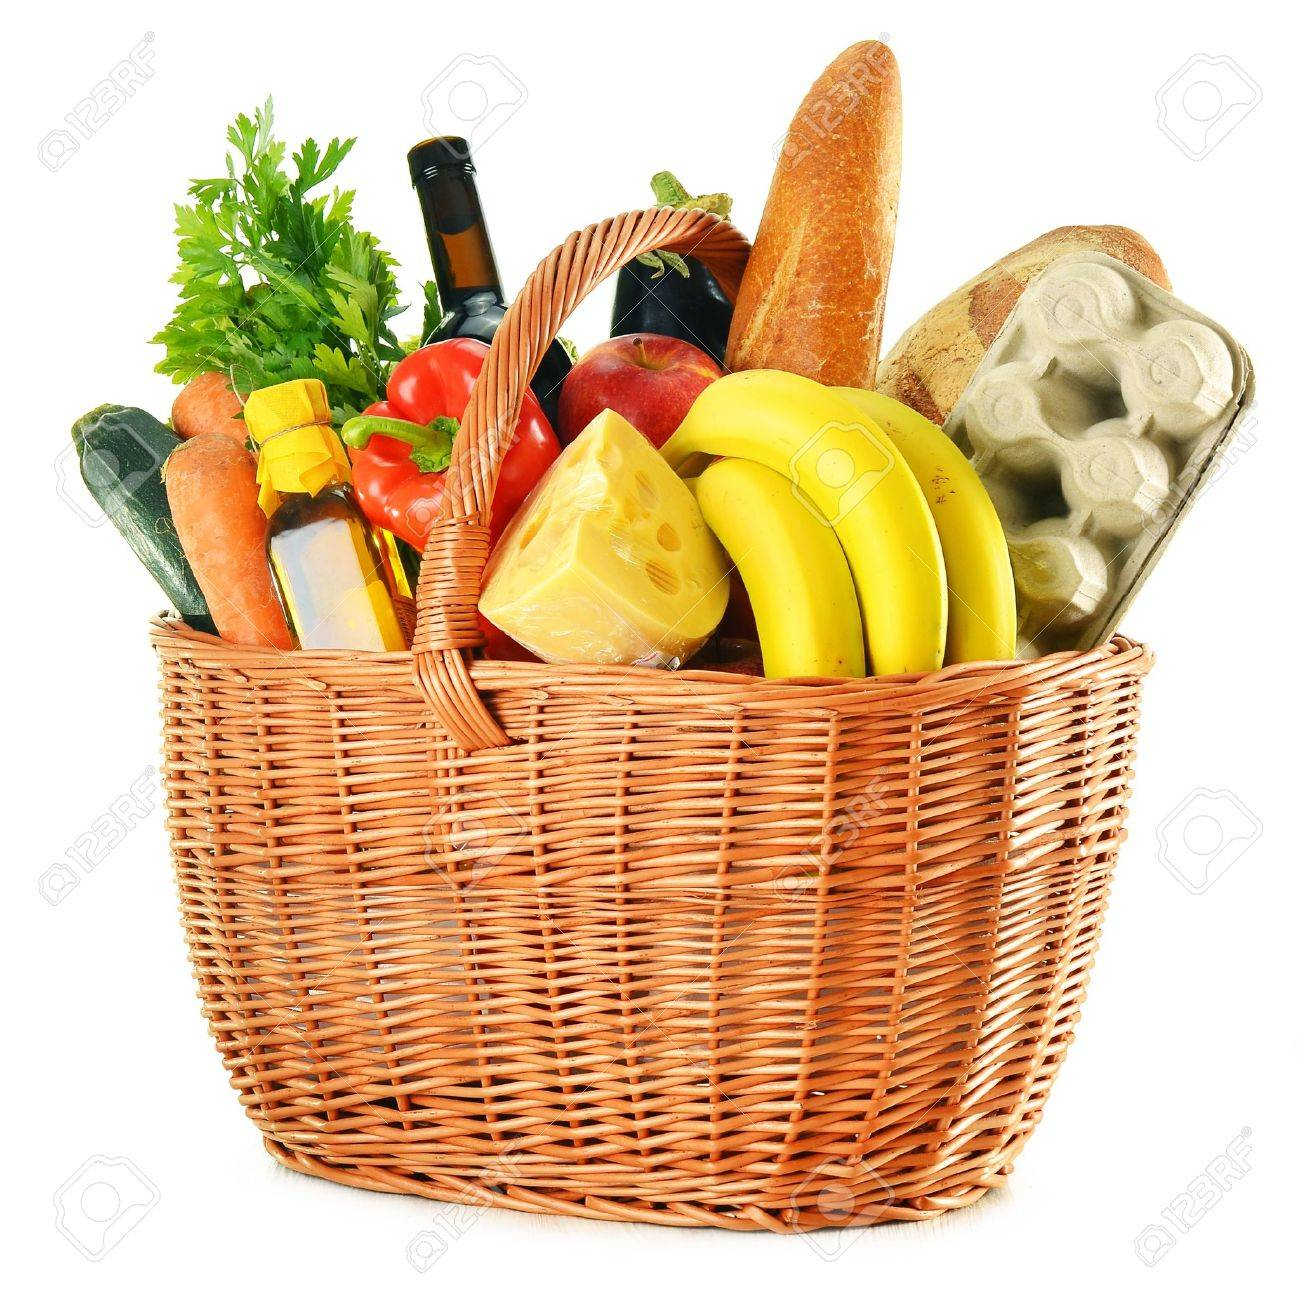 Wicker basket with variety of grocery products isolated on white - 18755462